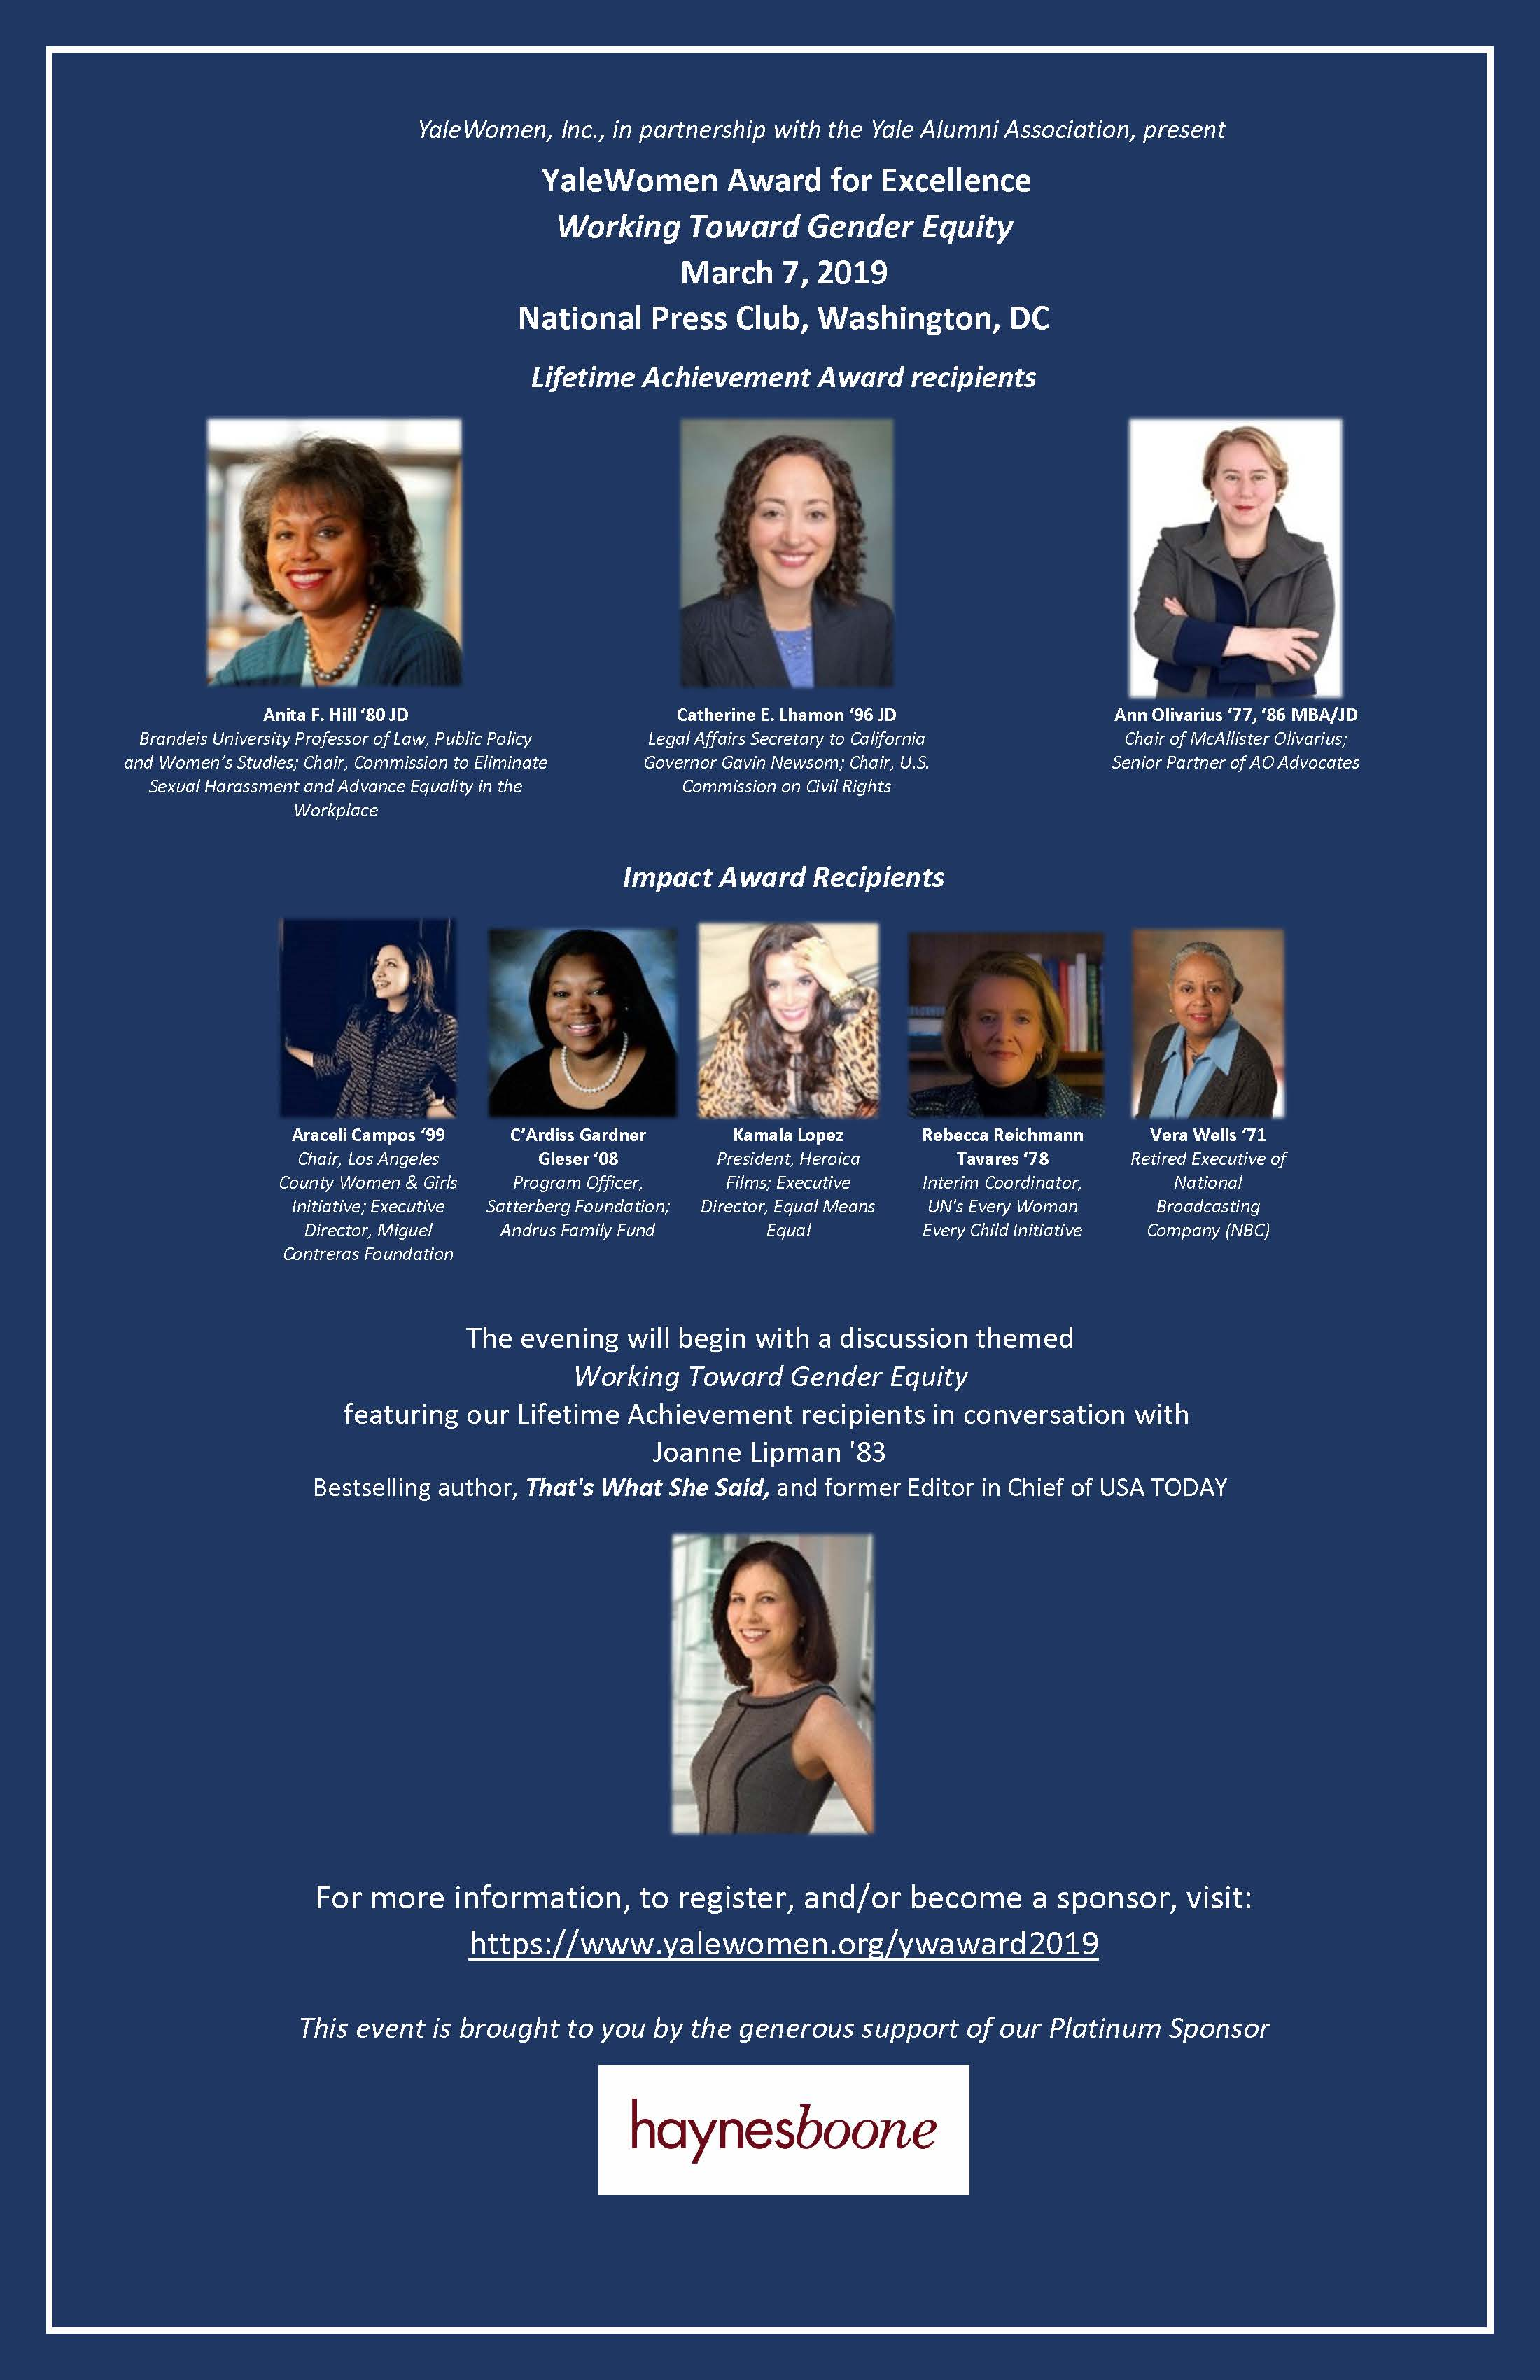 YaleWomen Award for Excellence 2019